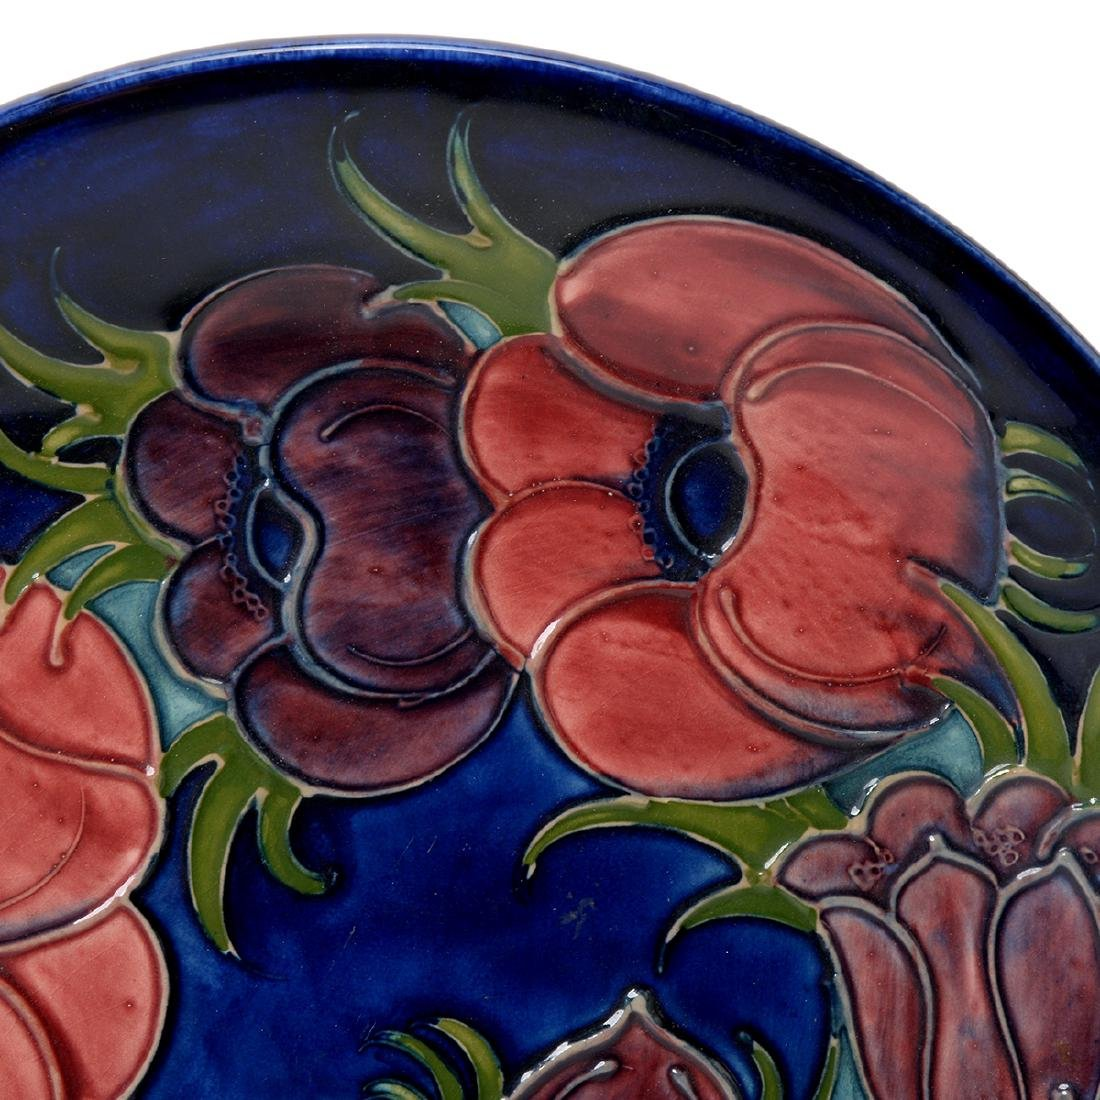 Moorcroft Blue Ground Floral Tubelined Plate - 2